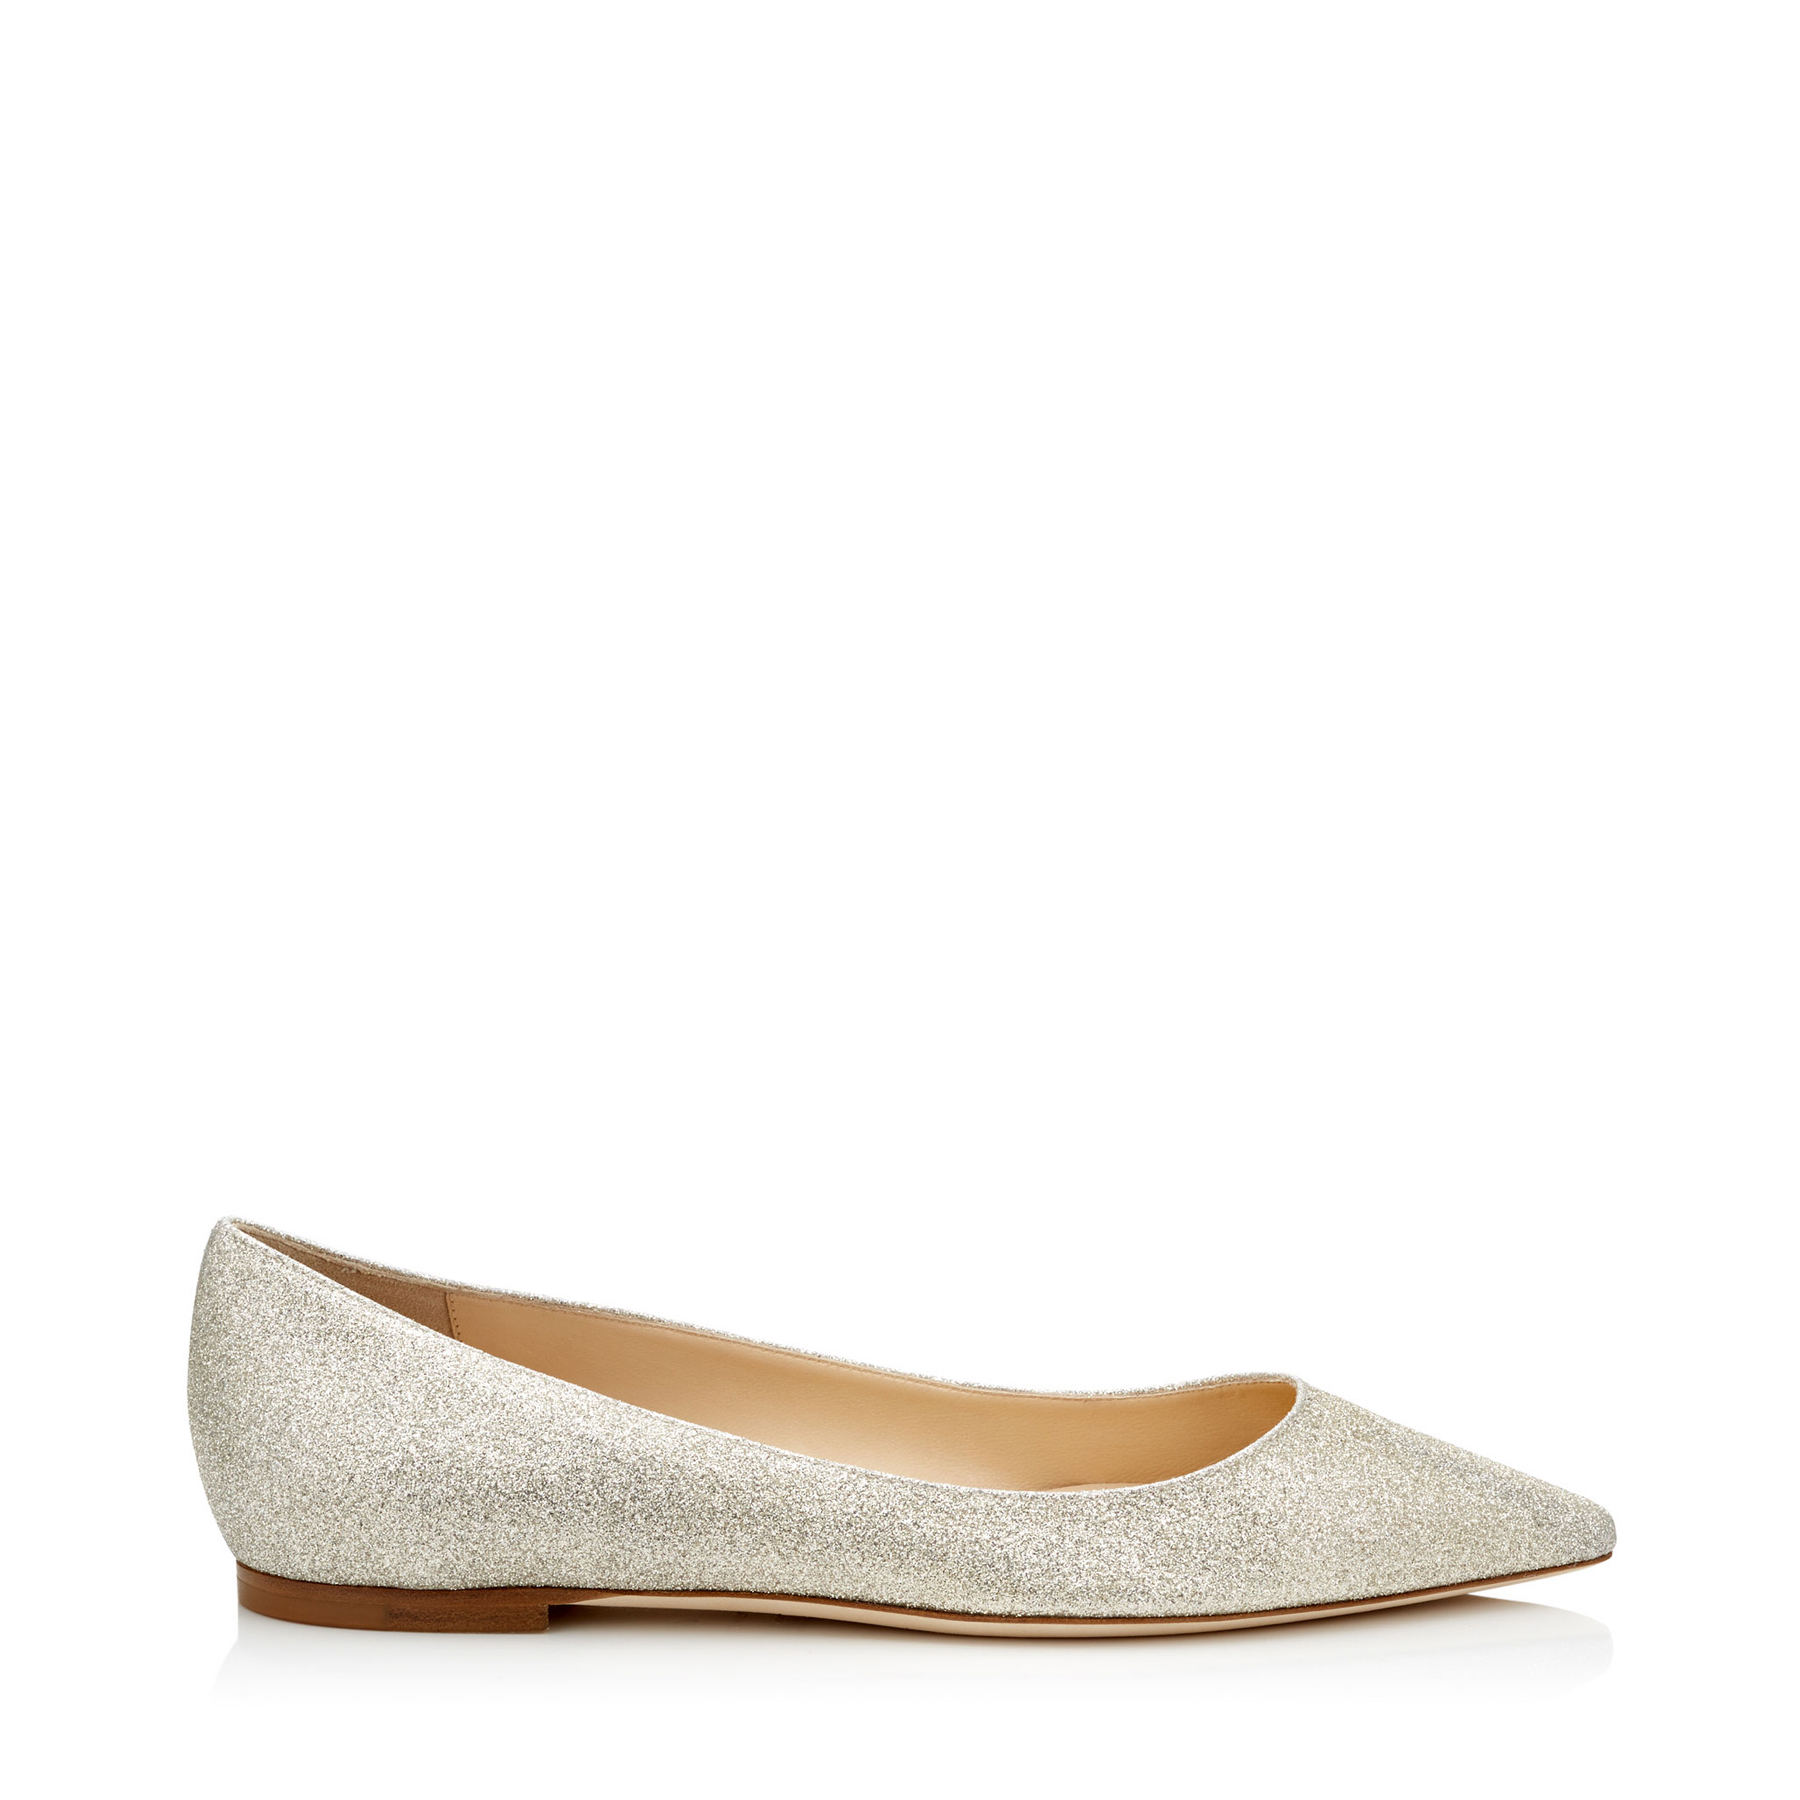 ROMY FLAT Platinum Ice Dusty Glitter Pointy Toe Flats by Jimmy Choo